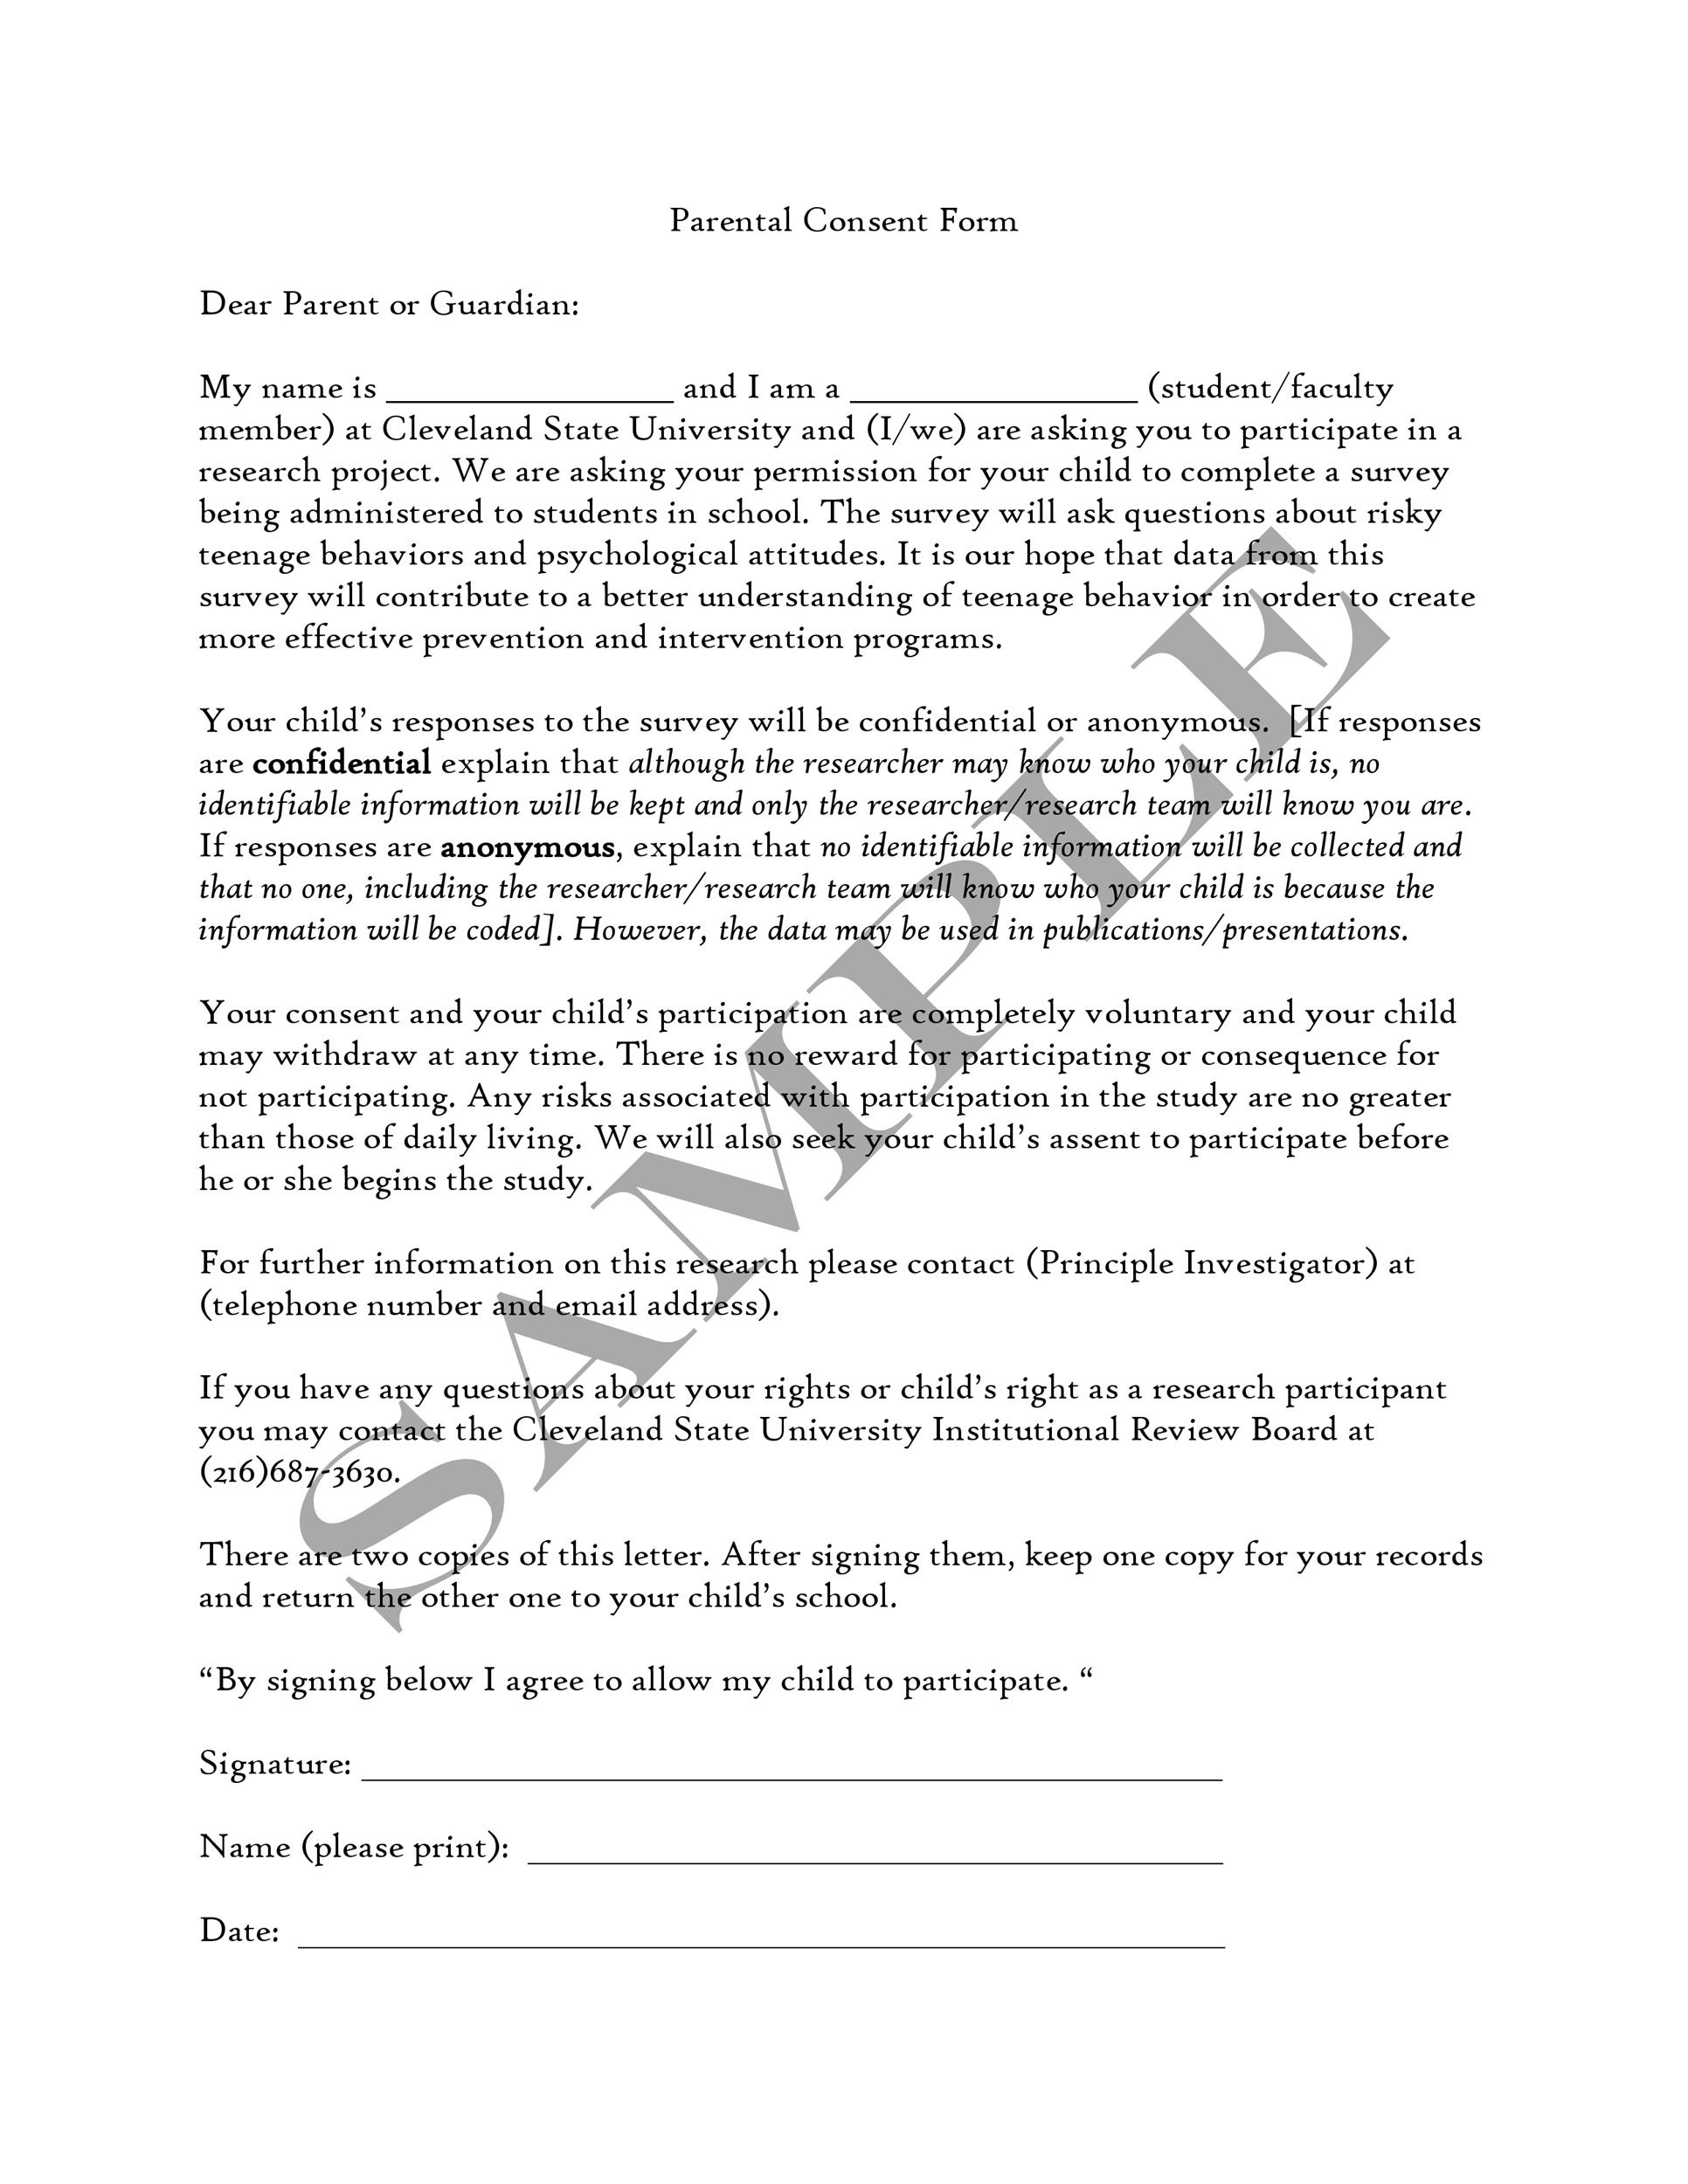 50 Printable Parental Consent Form  Templates ᐅ Template Lab